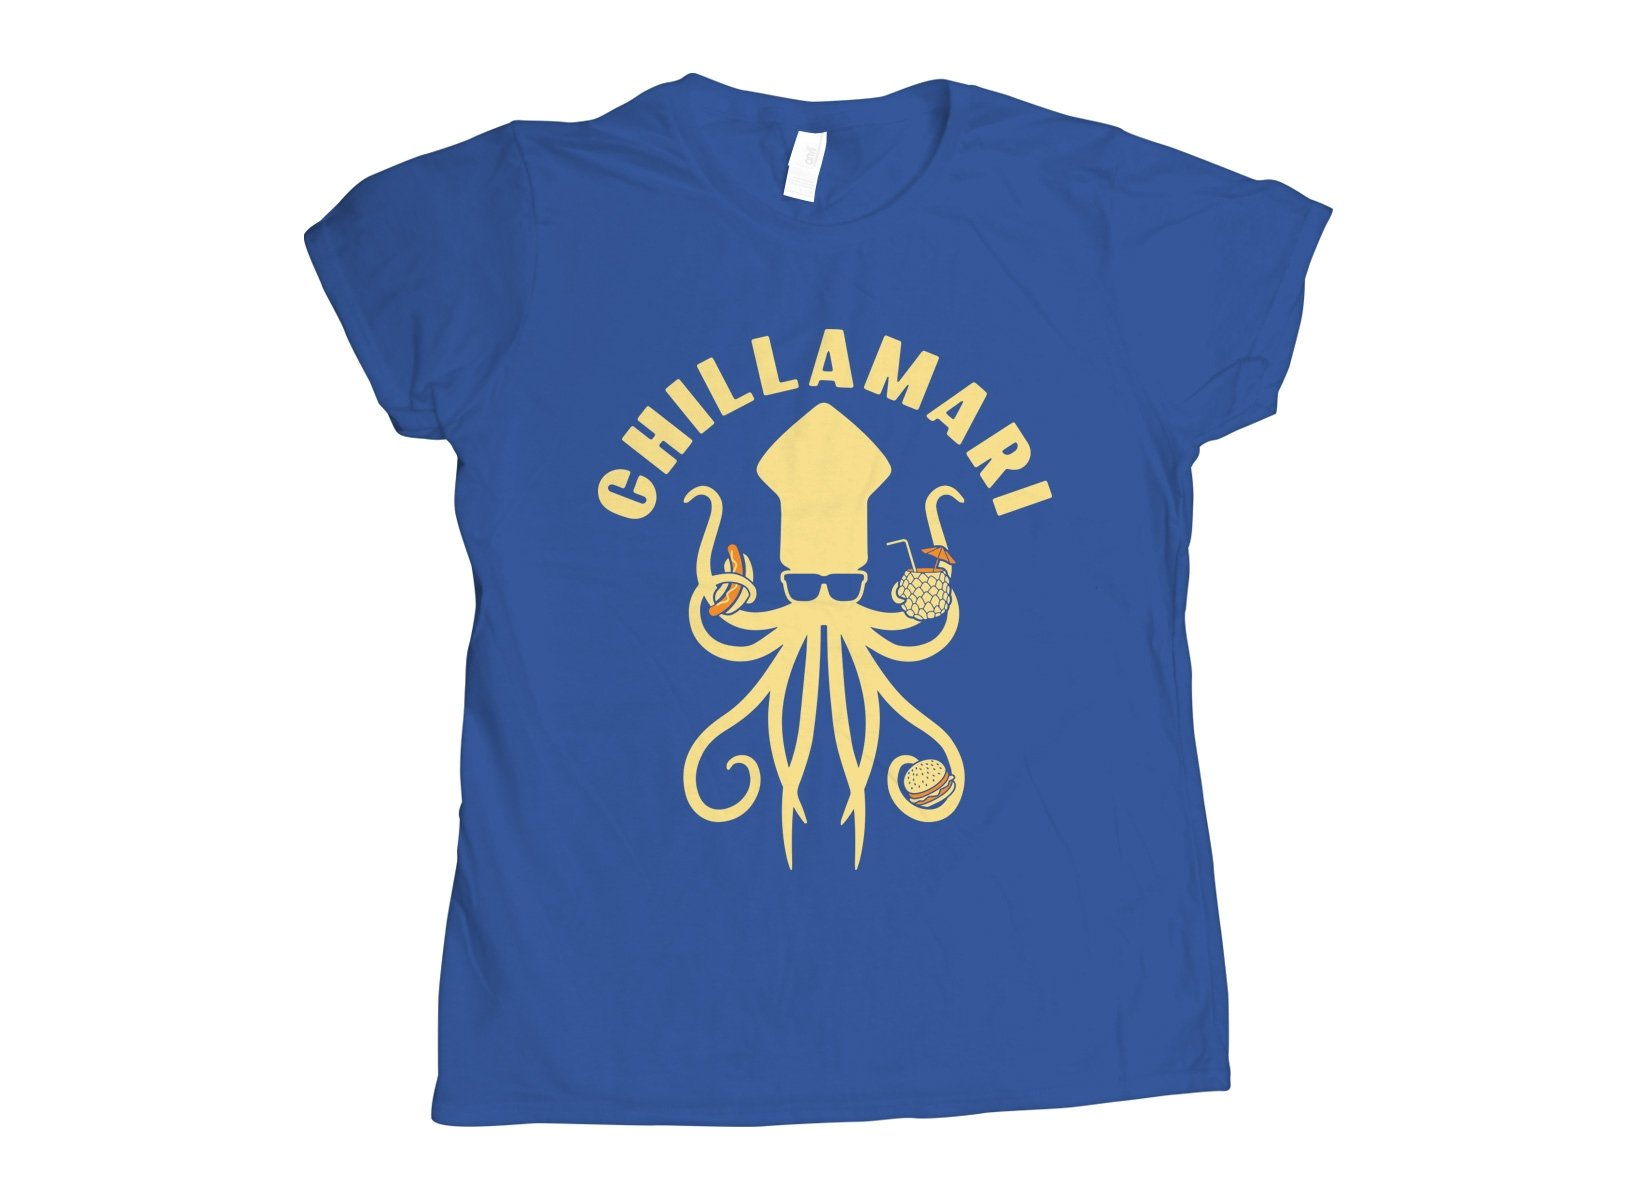 Chillamari on Womens T-Shirt